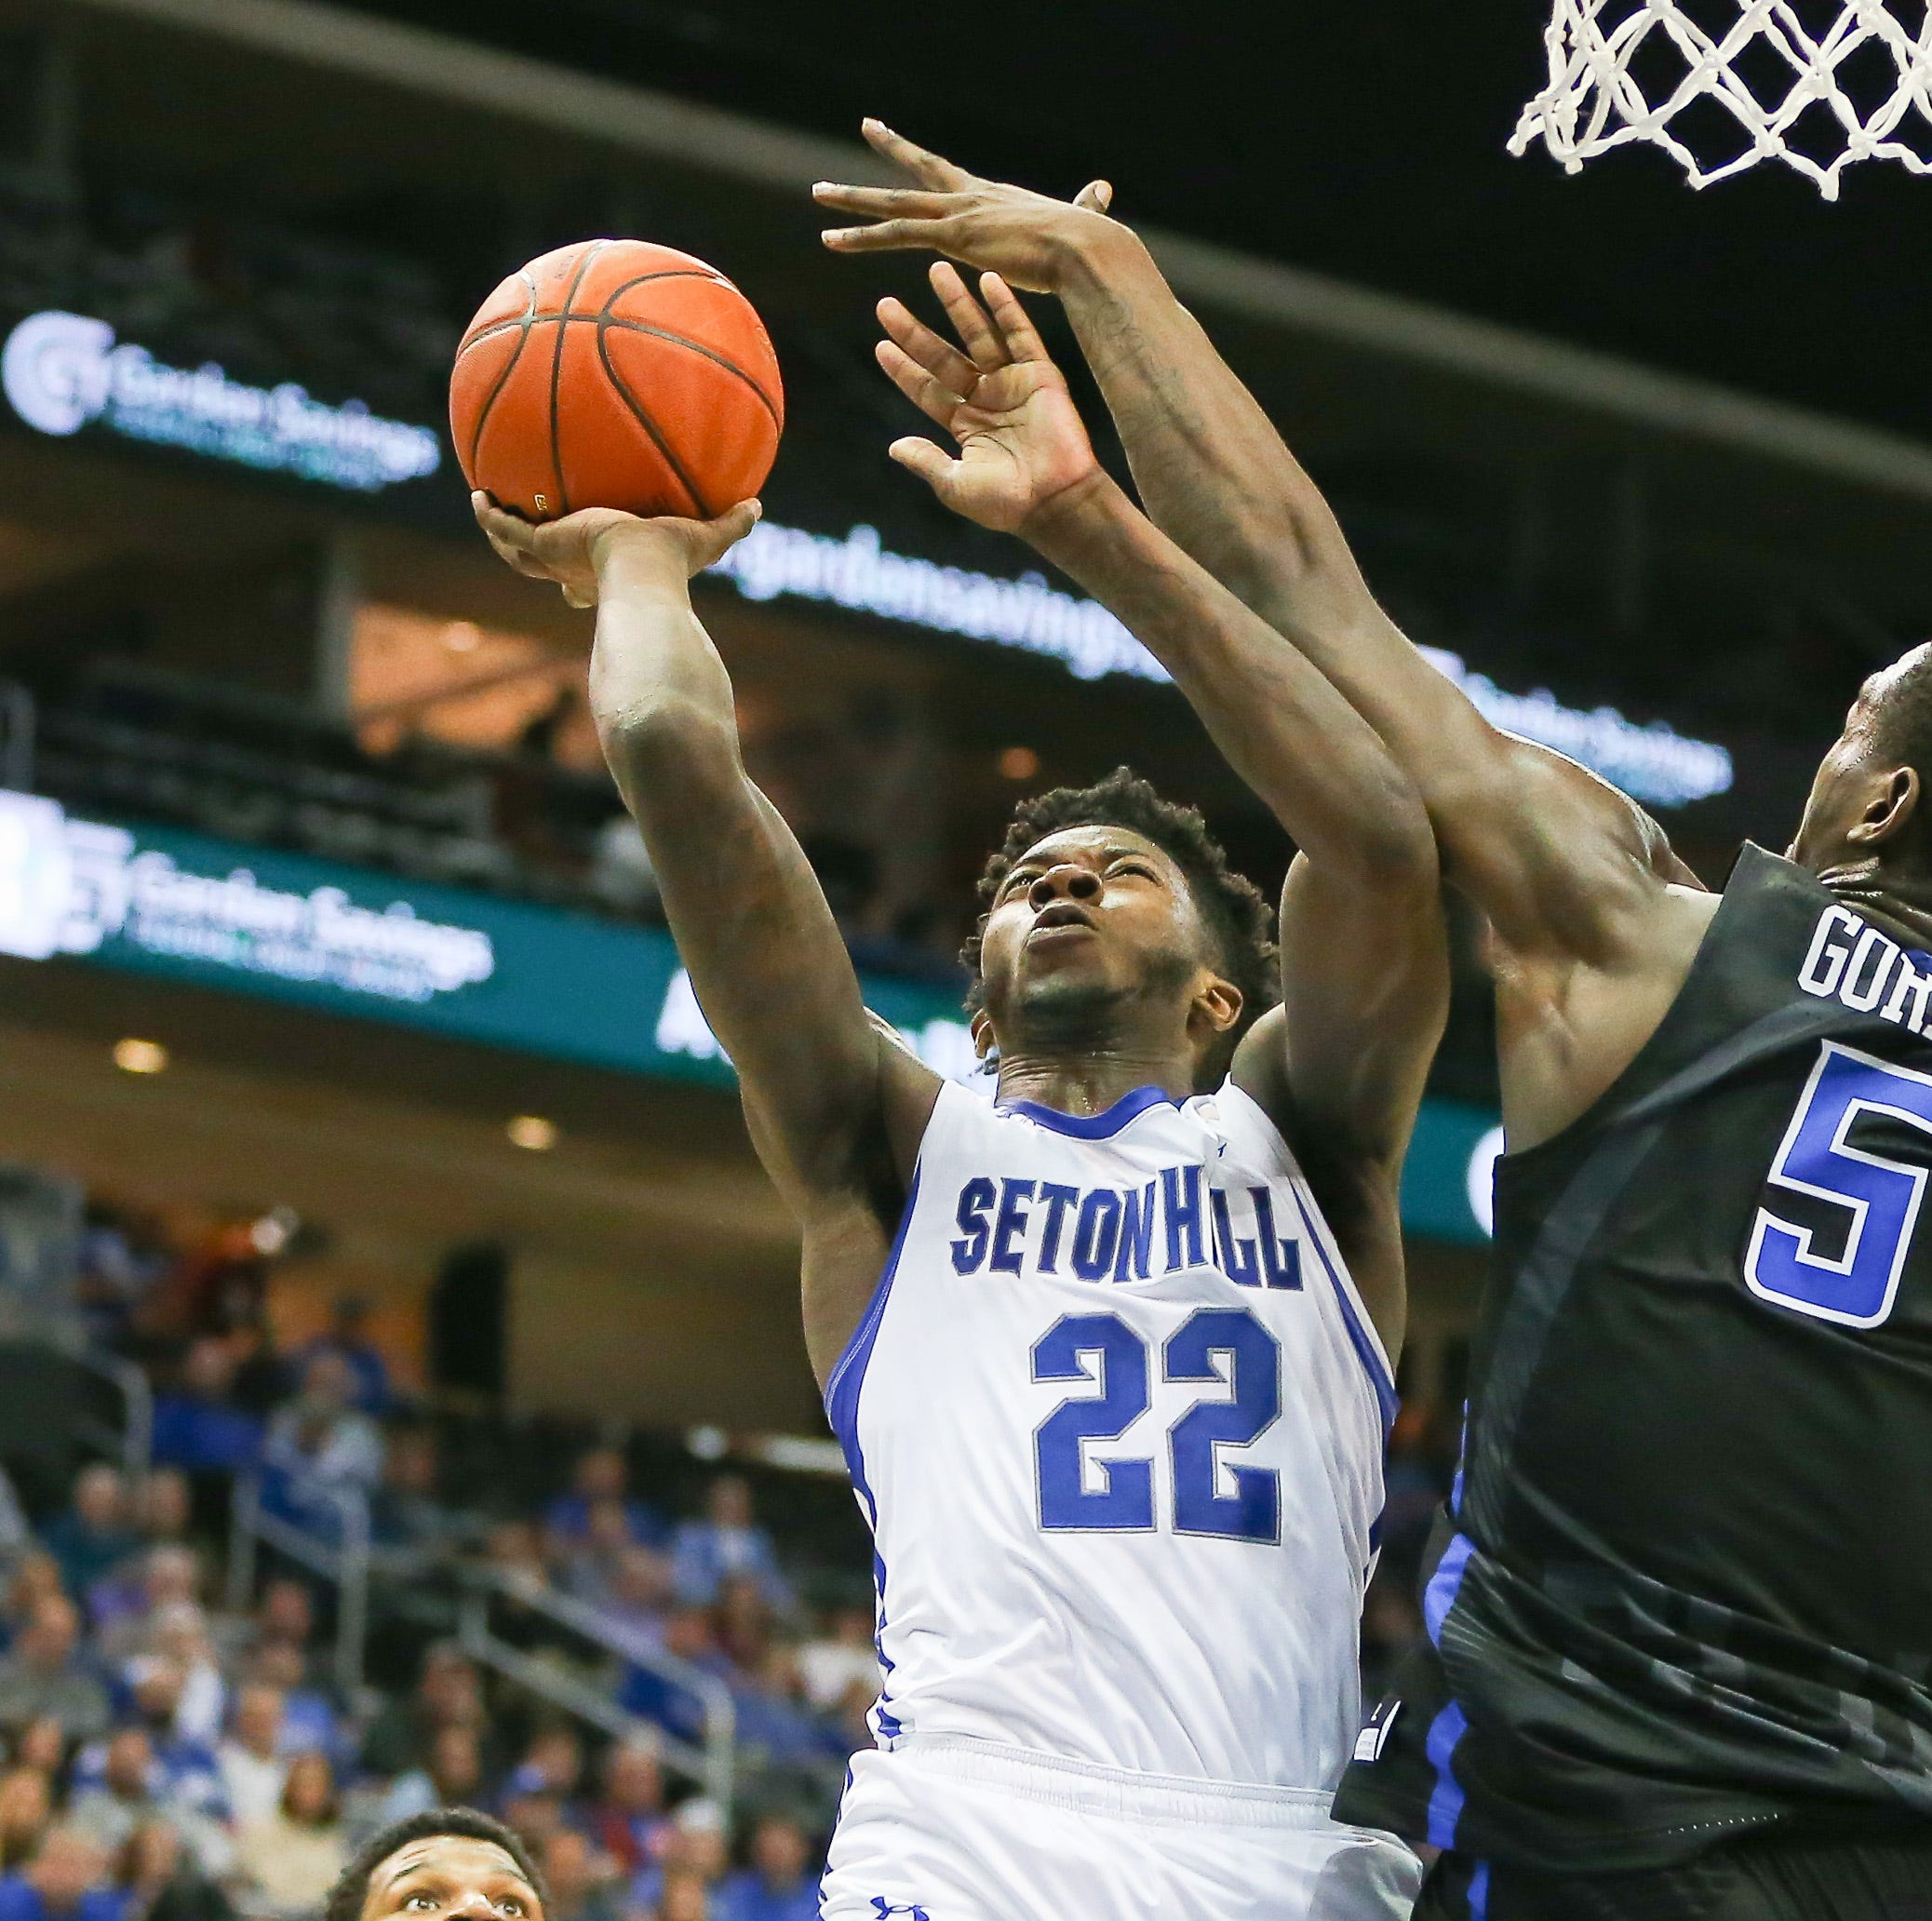 Seton Hall basketball: Growing pains evident in loss to St. Louis